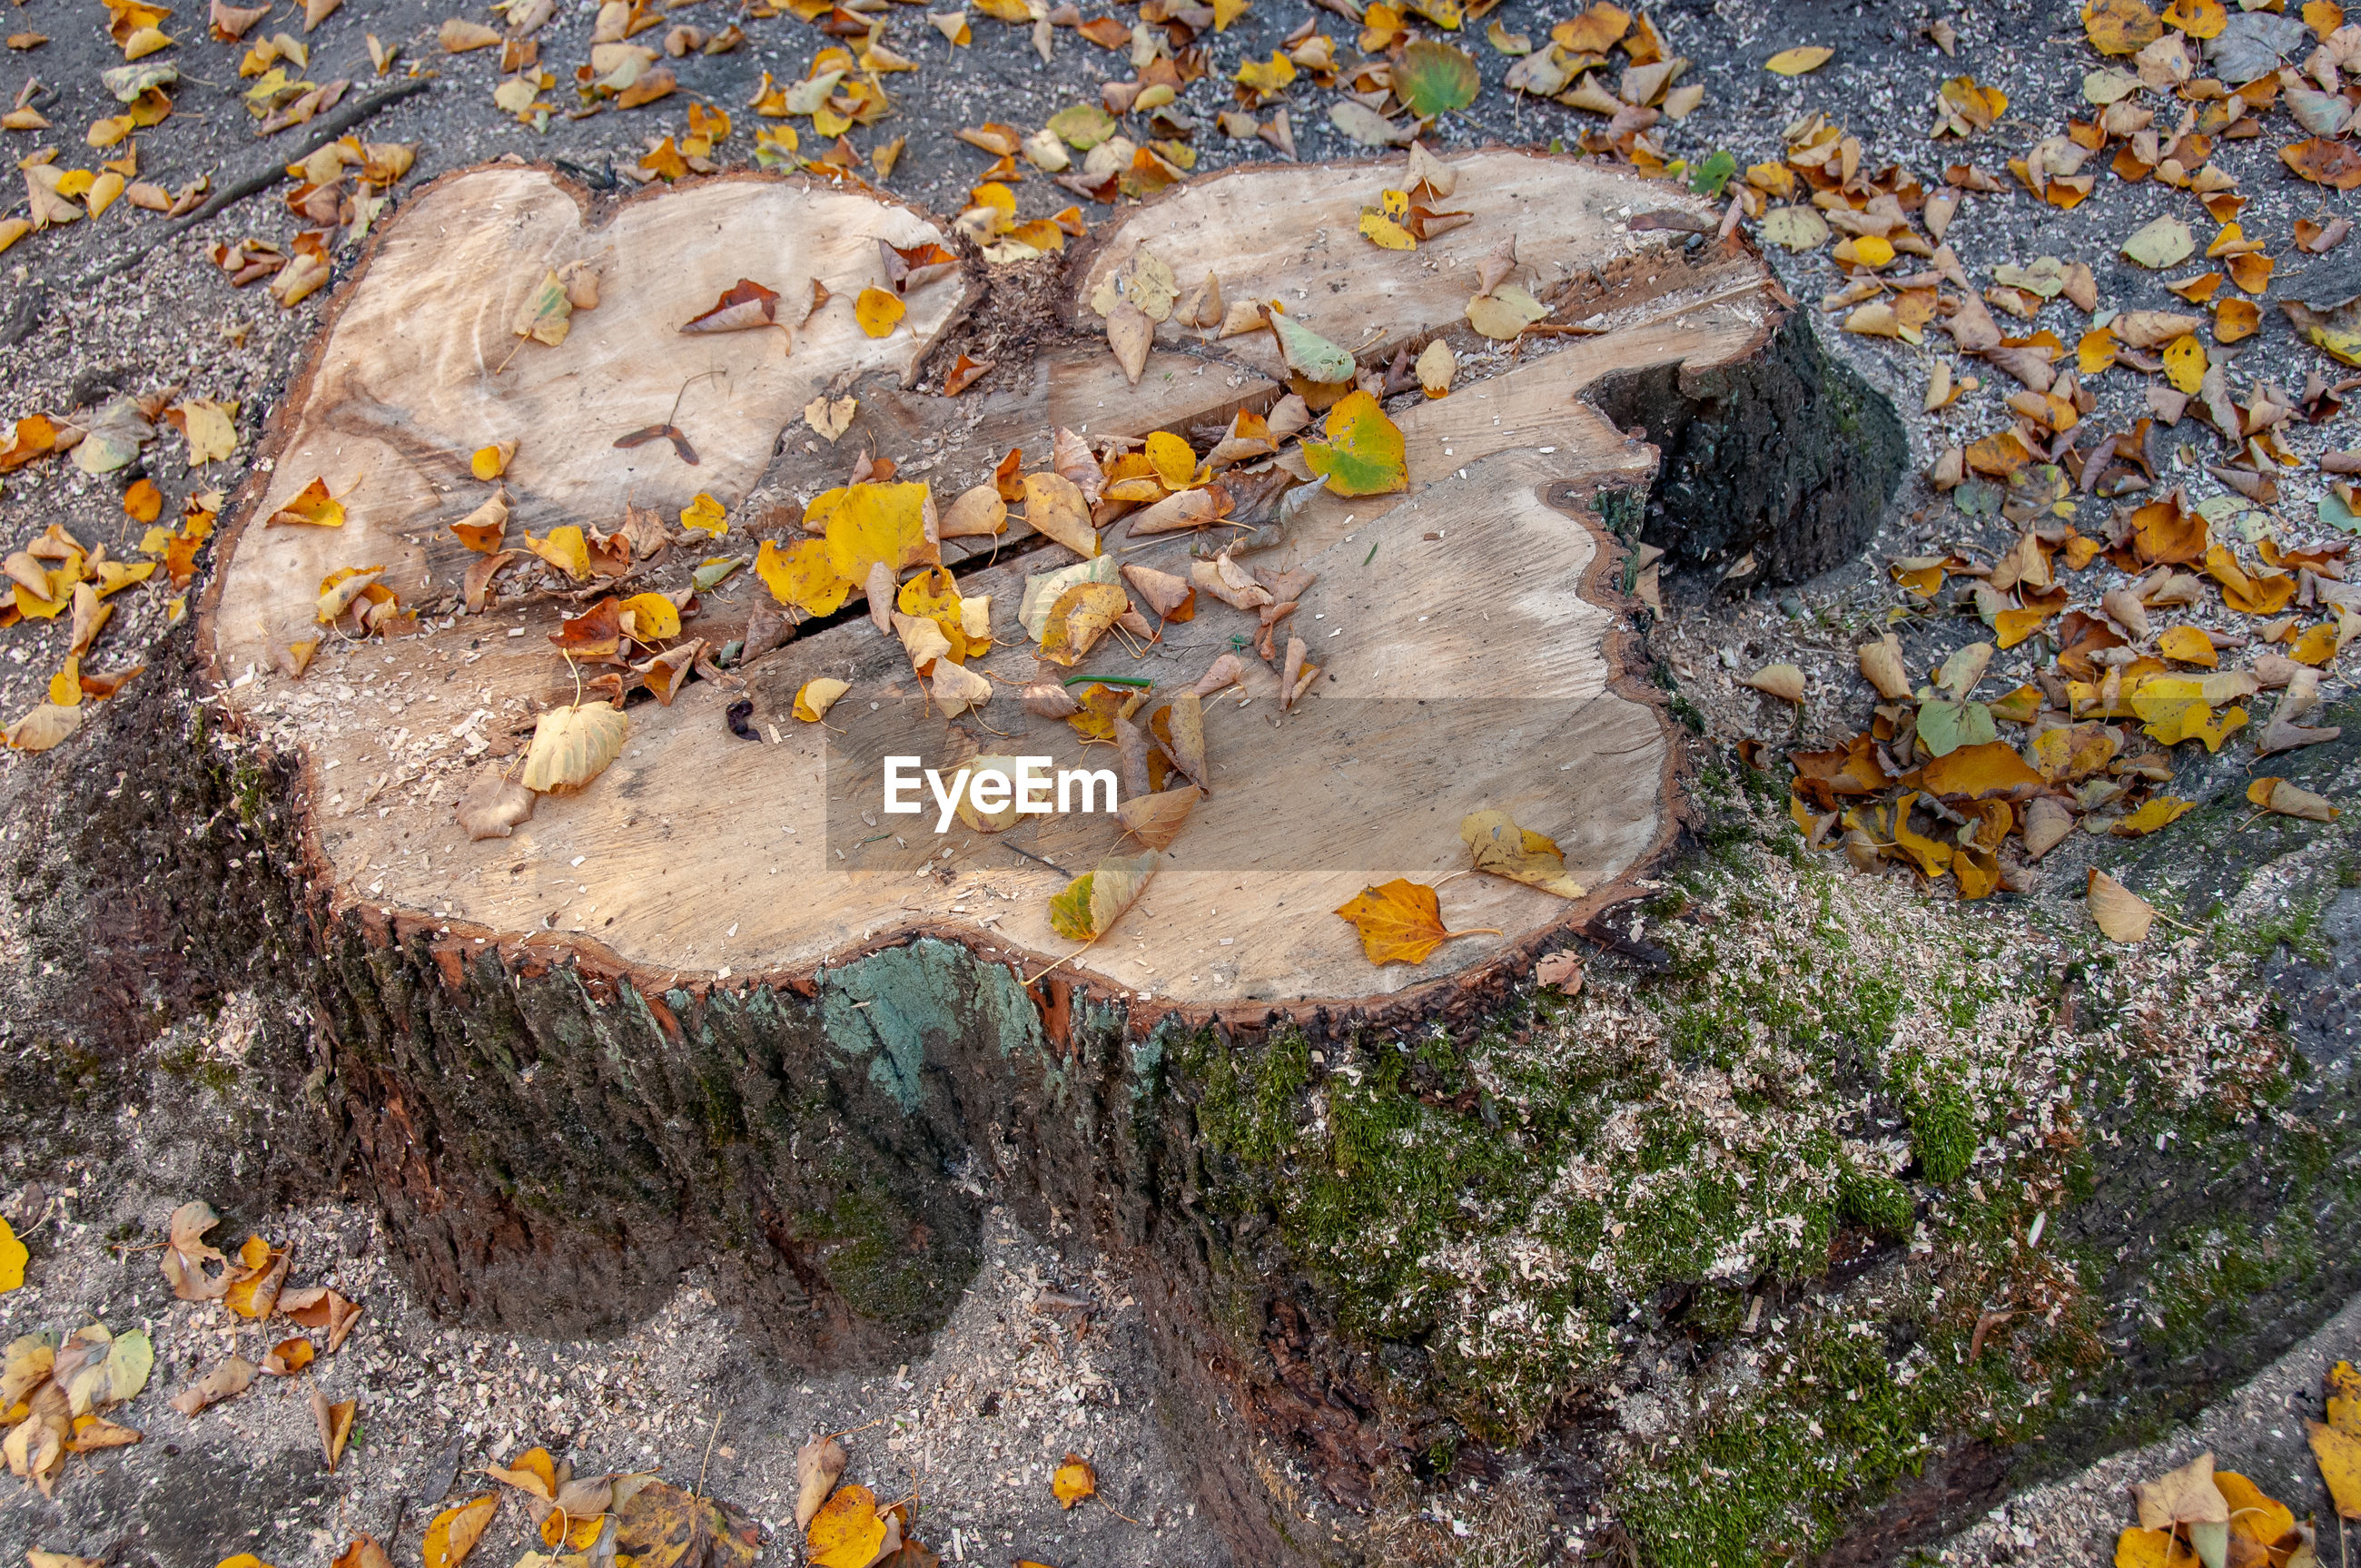 HIGH ANGLE VIEW OF LICHEN ON ROCK IN FOREST